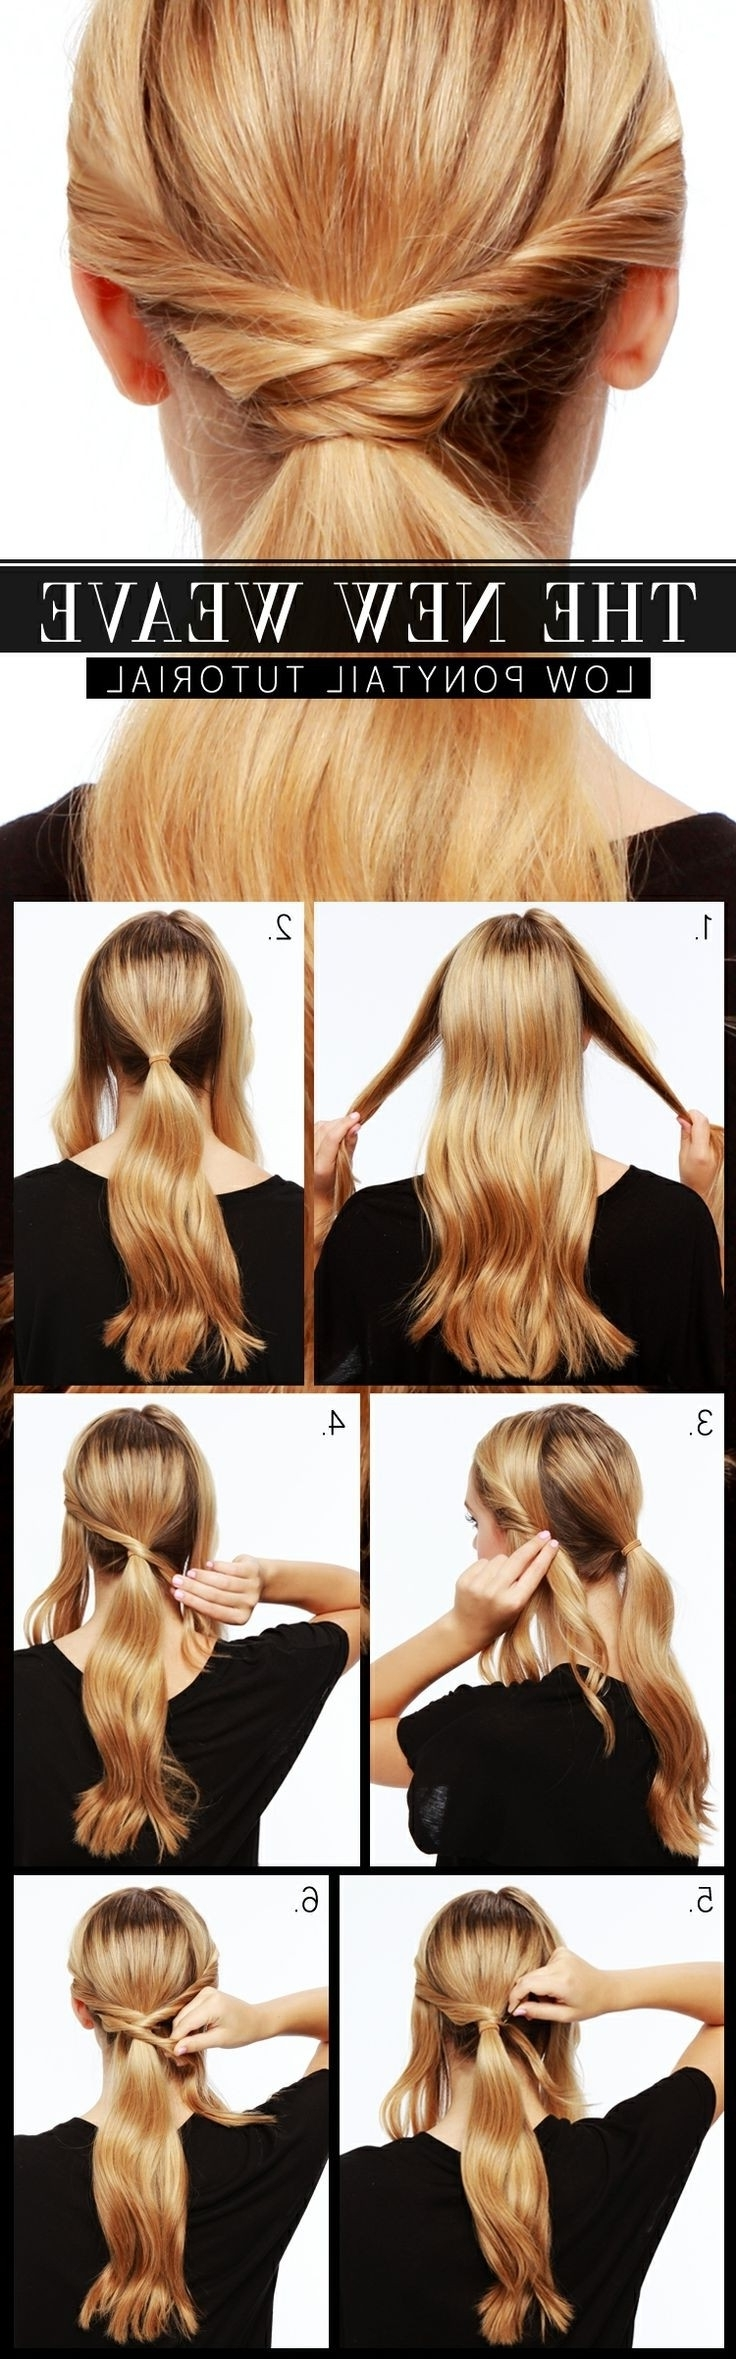 Current Glossy Twisted Look Ponytail Hairstyles Pertaining To 15 Cute And Easy Ponytail Hairstyles Tutorials – Popular Haircuts (View 11 of 20)